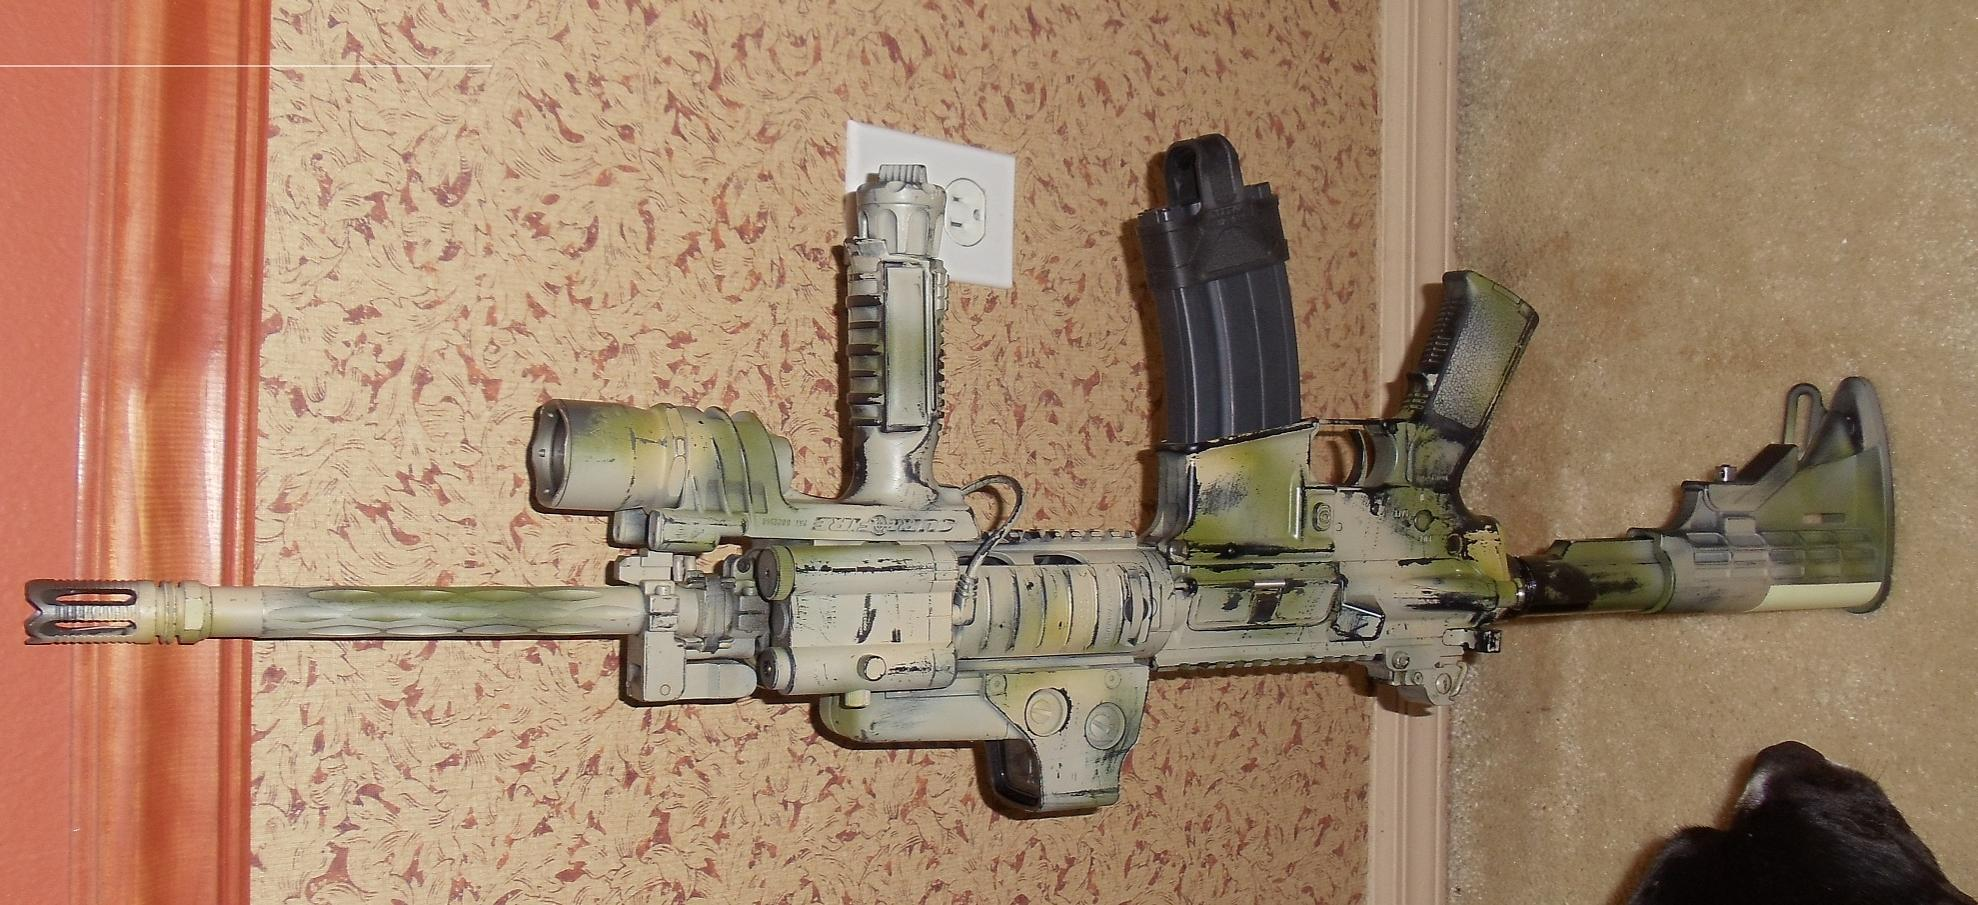 Painting Rifles - How To-carbine.jpg